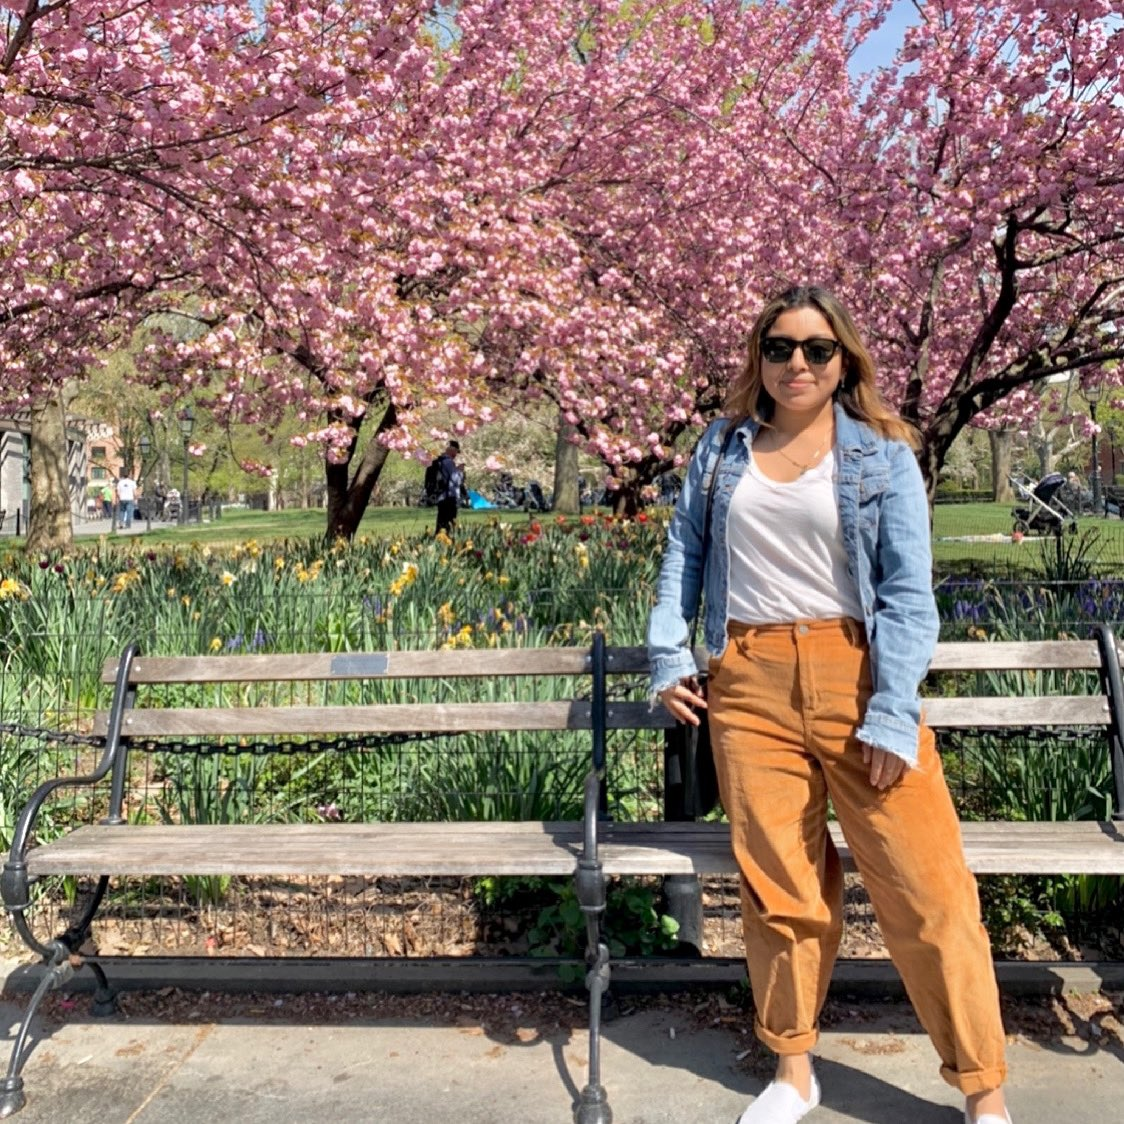 Since it made to the gram it might as well go here as well 😊 #nyc #washingtonsquarepark #spring https://t.co/tLCeyDgE4V